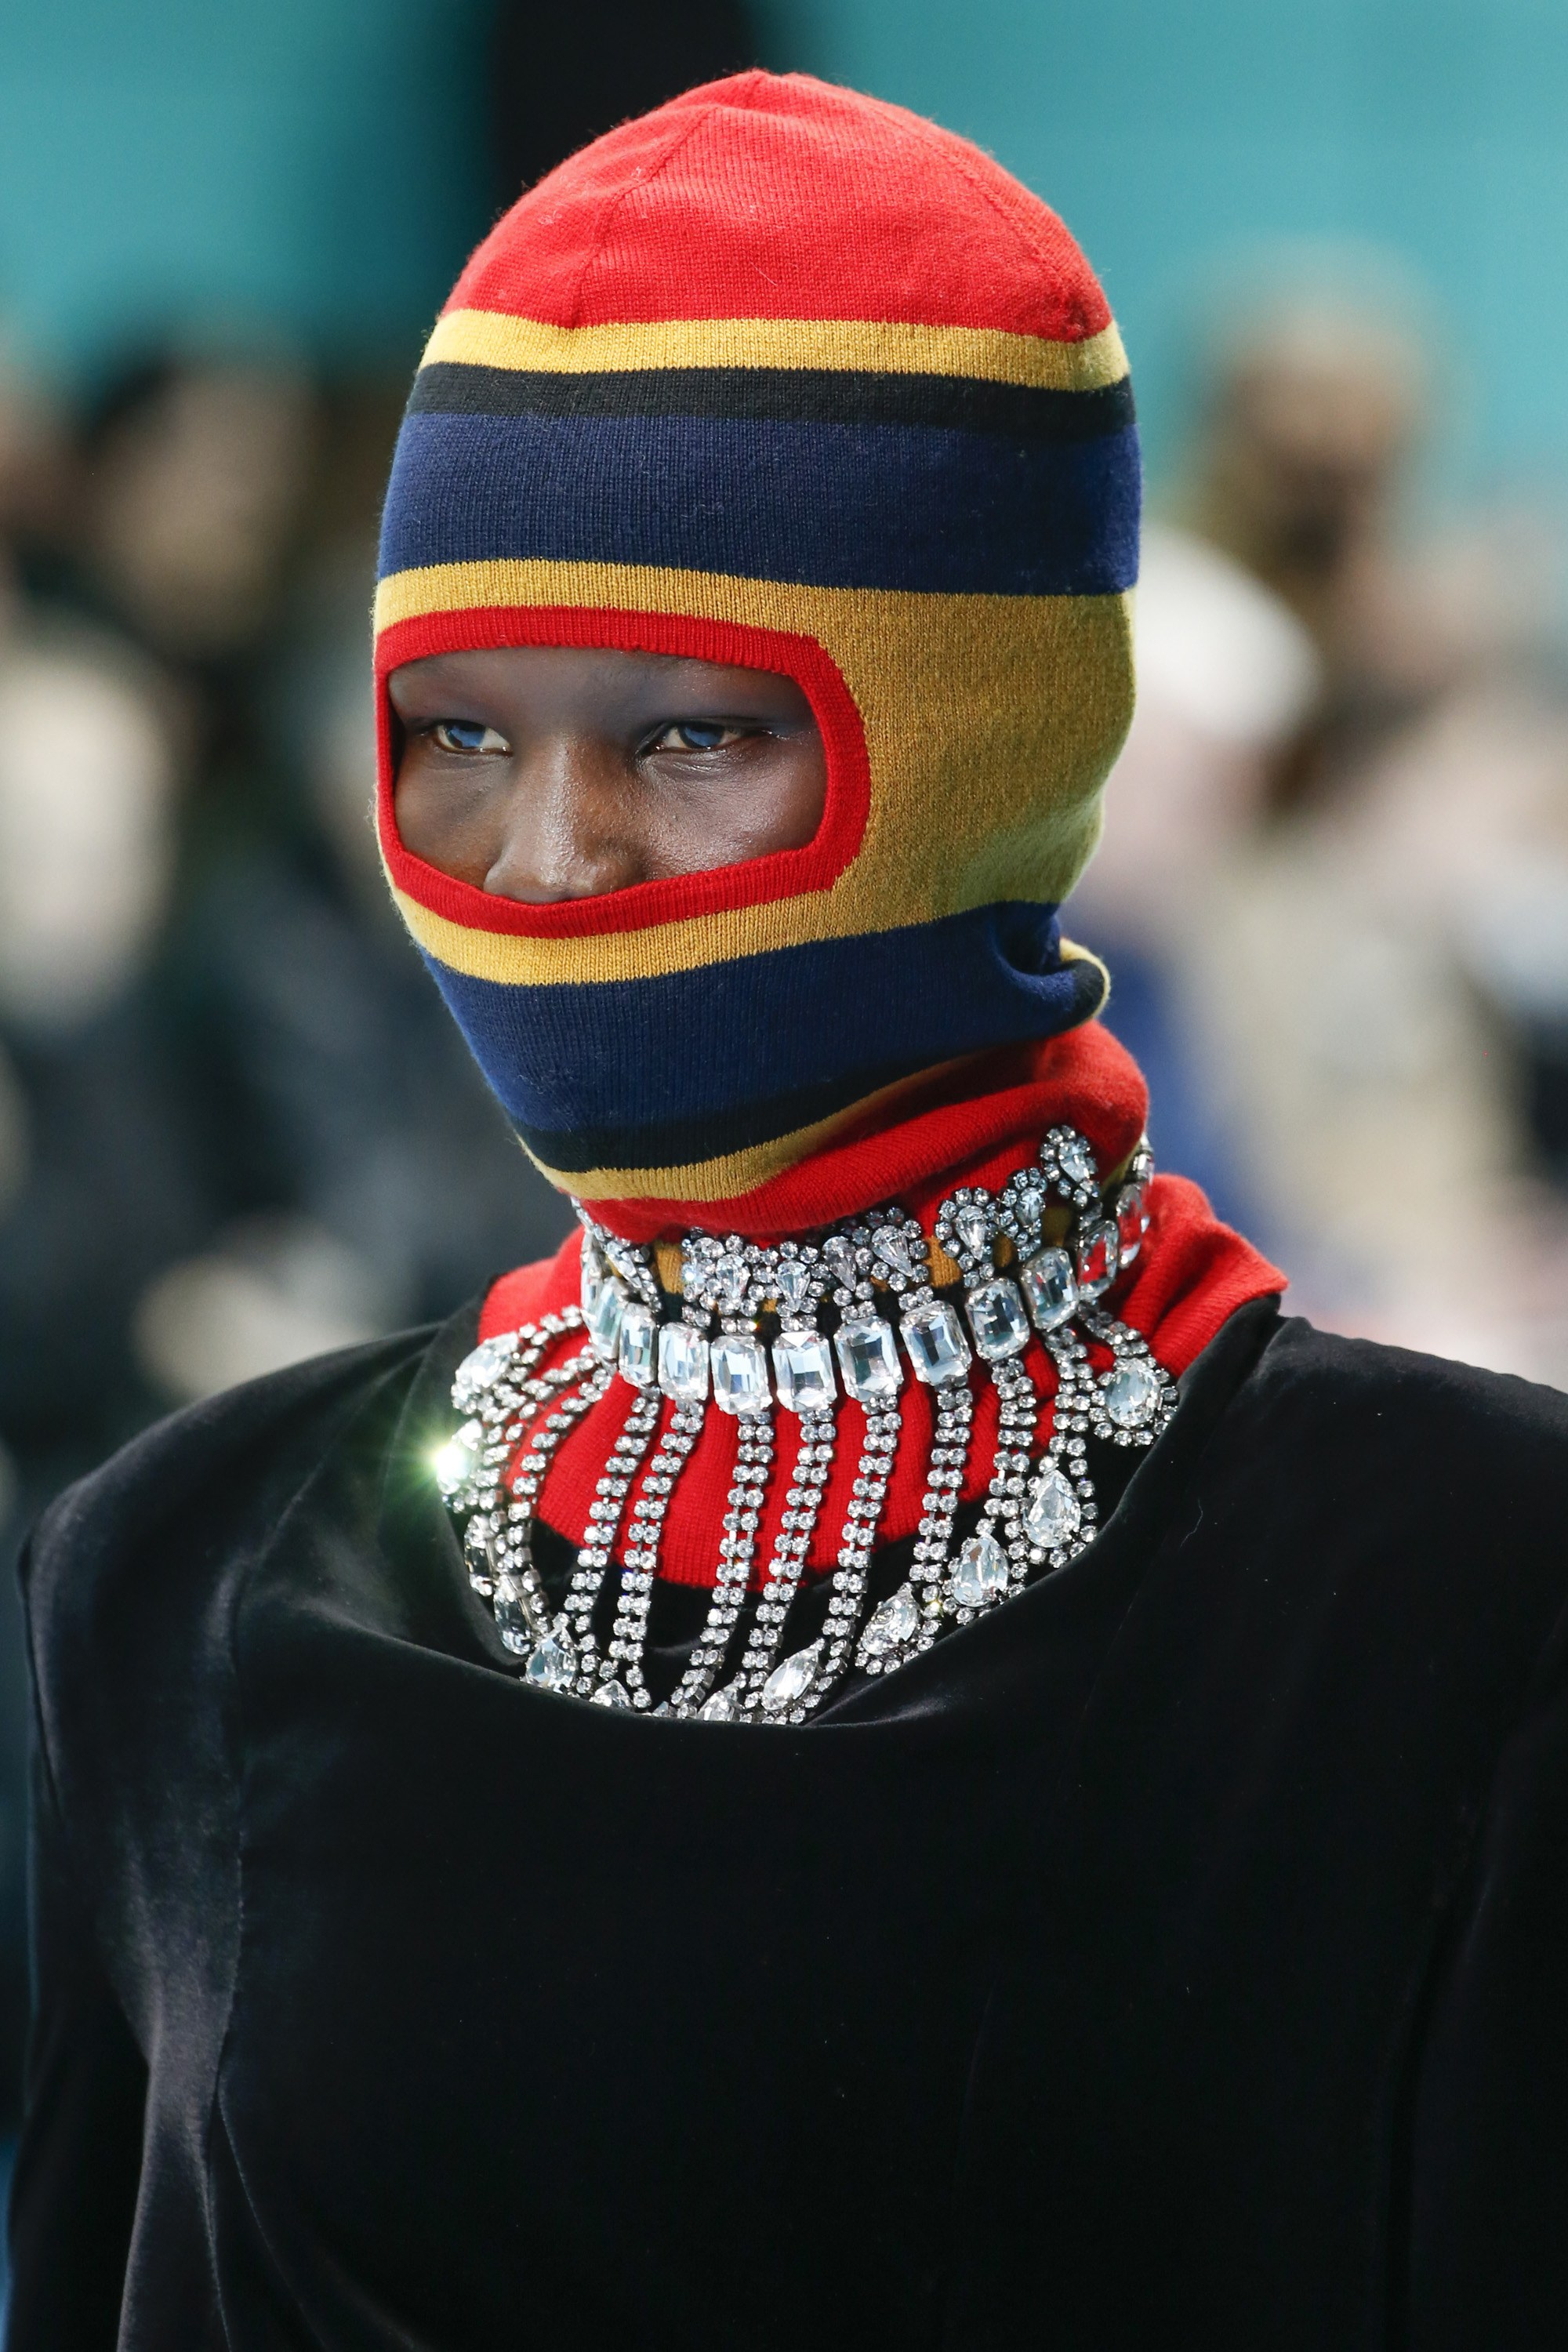 Kolor Magazine Let's Talk About The Headgear at The Gucci Show 2.jpg